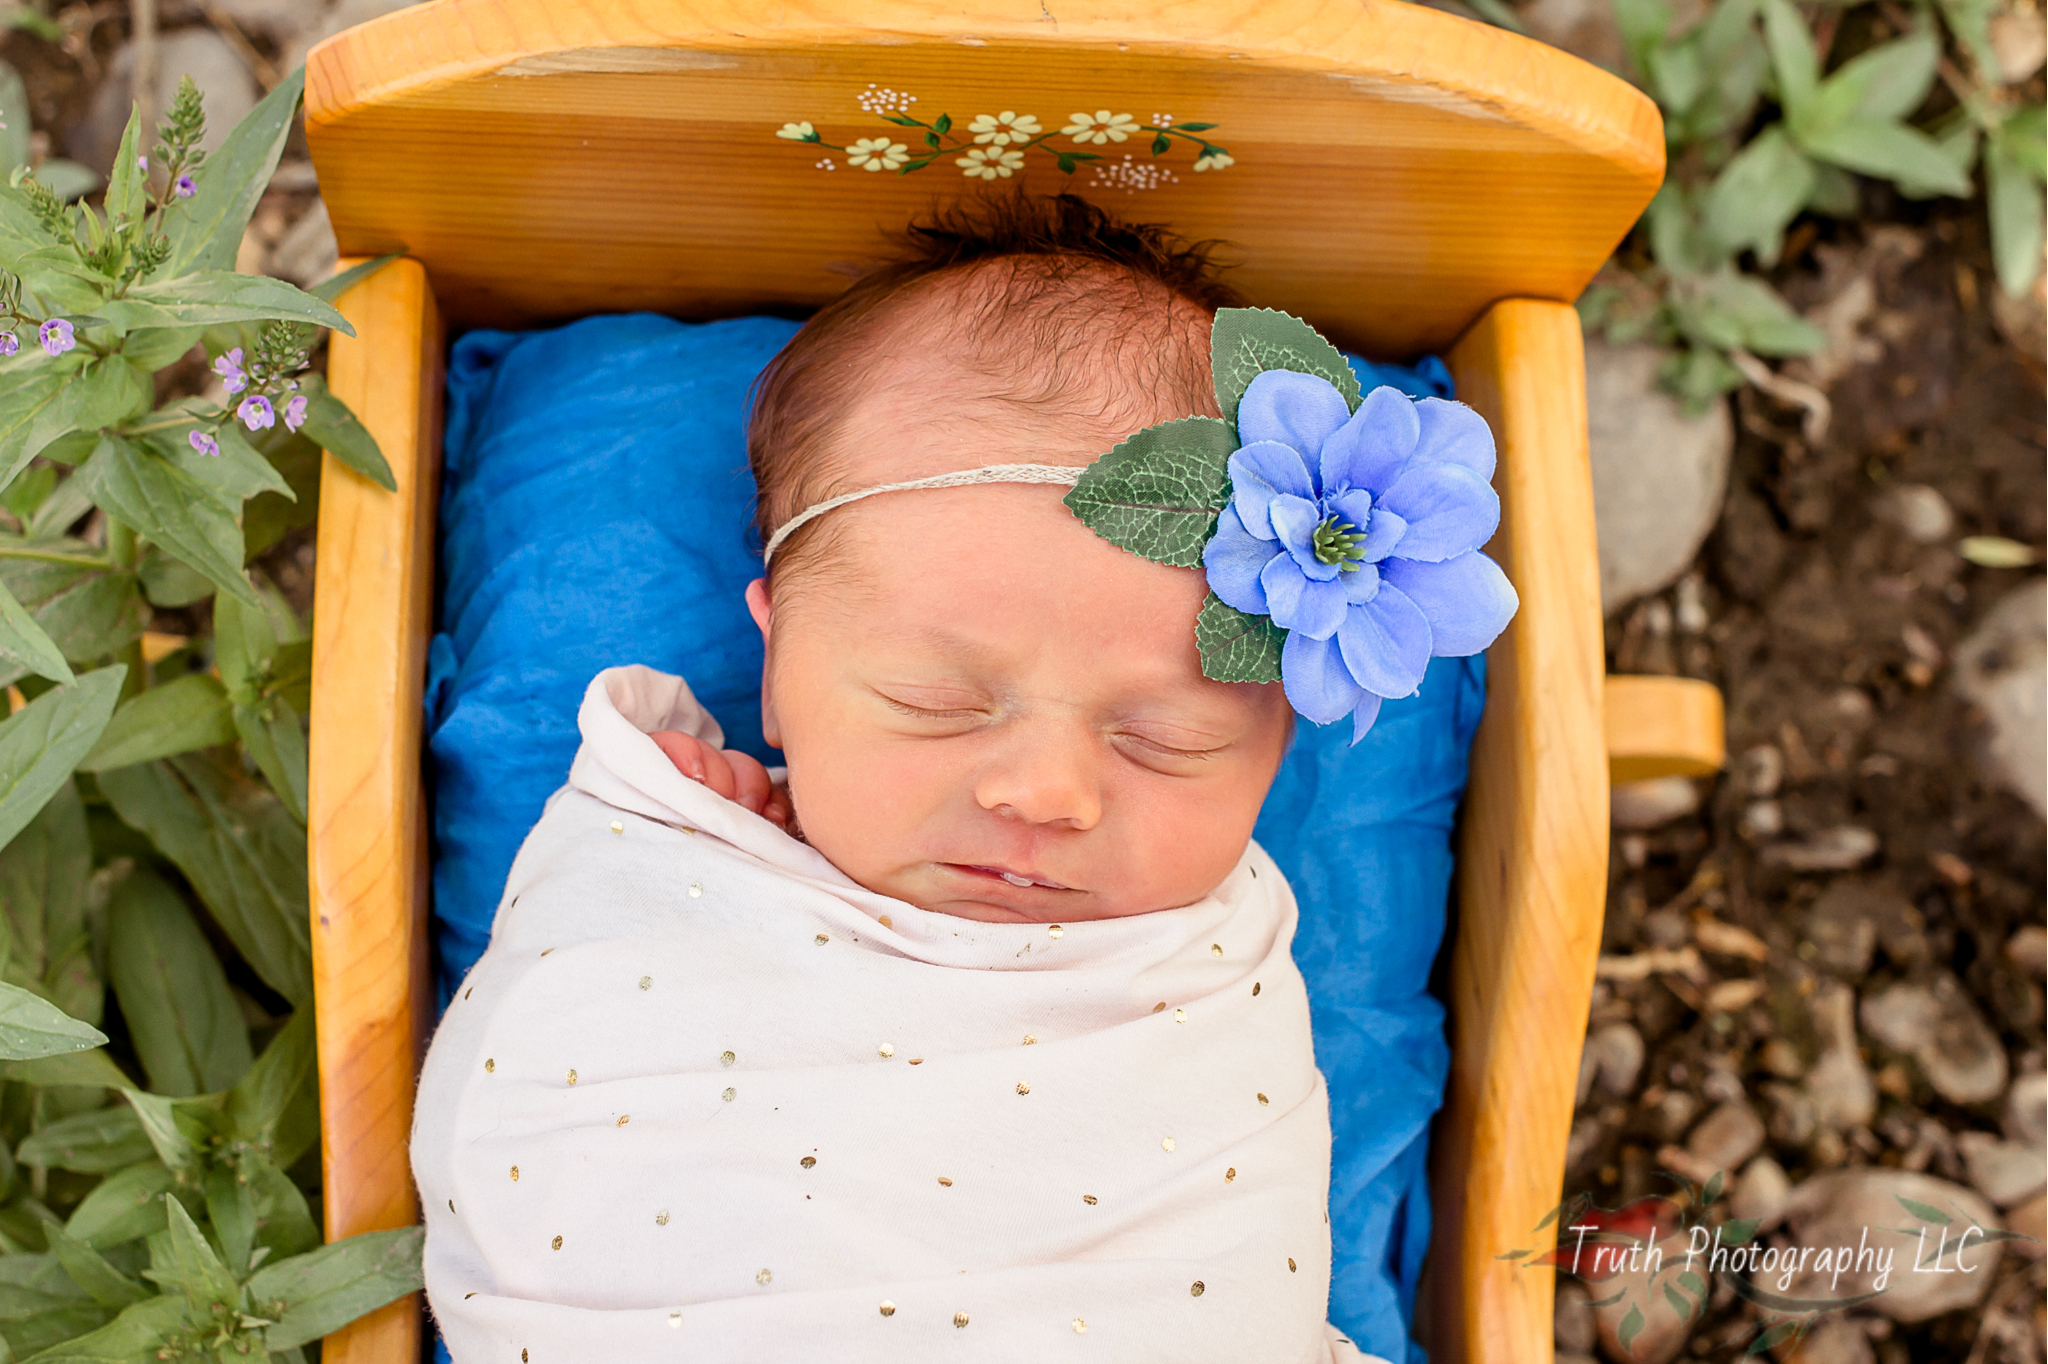 Truth-Photography-Denver-Outdoor-infant-photograph.jpg